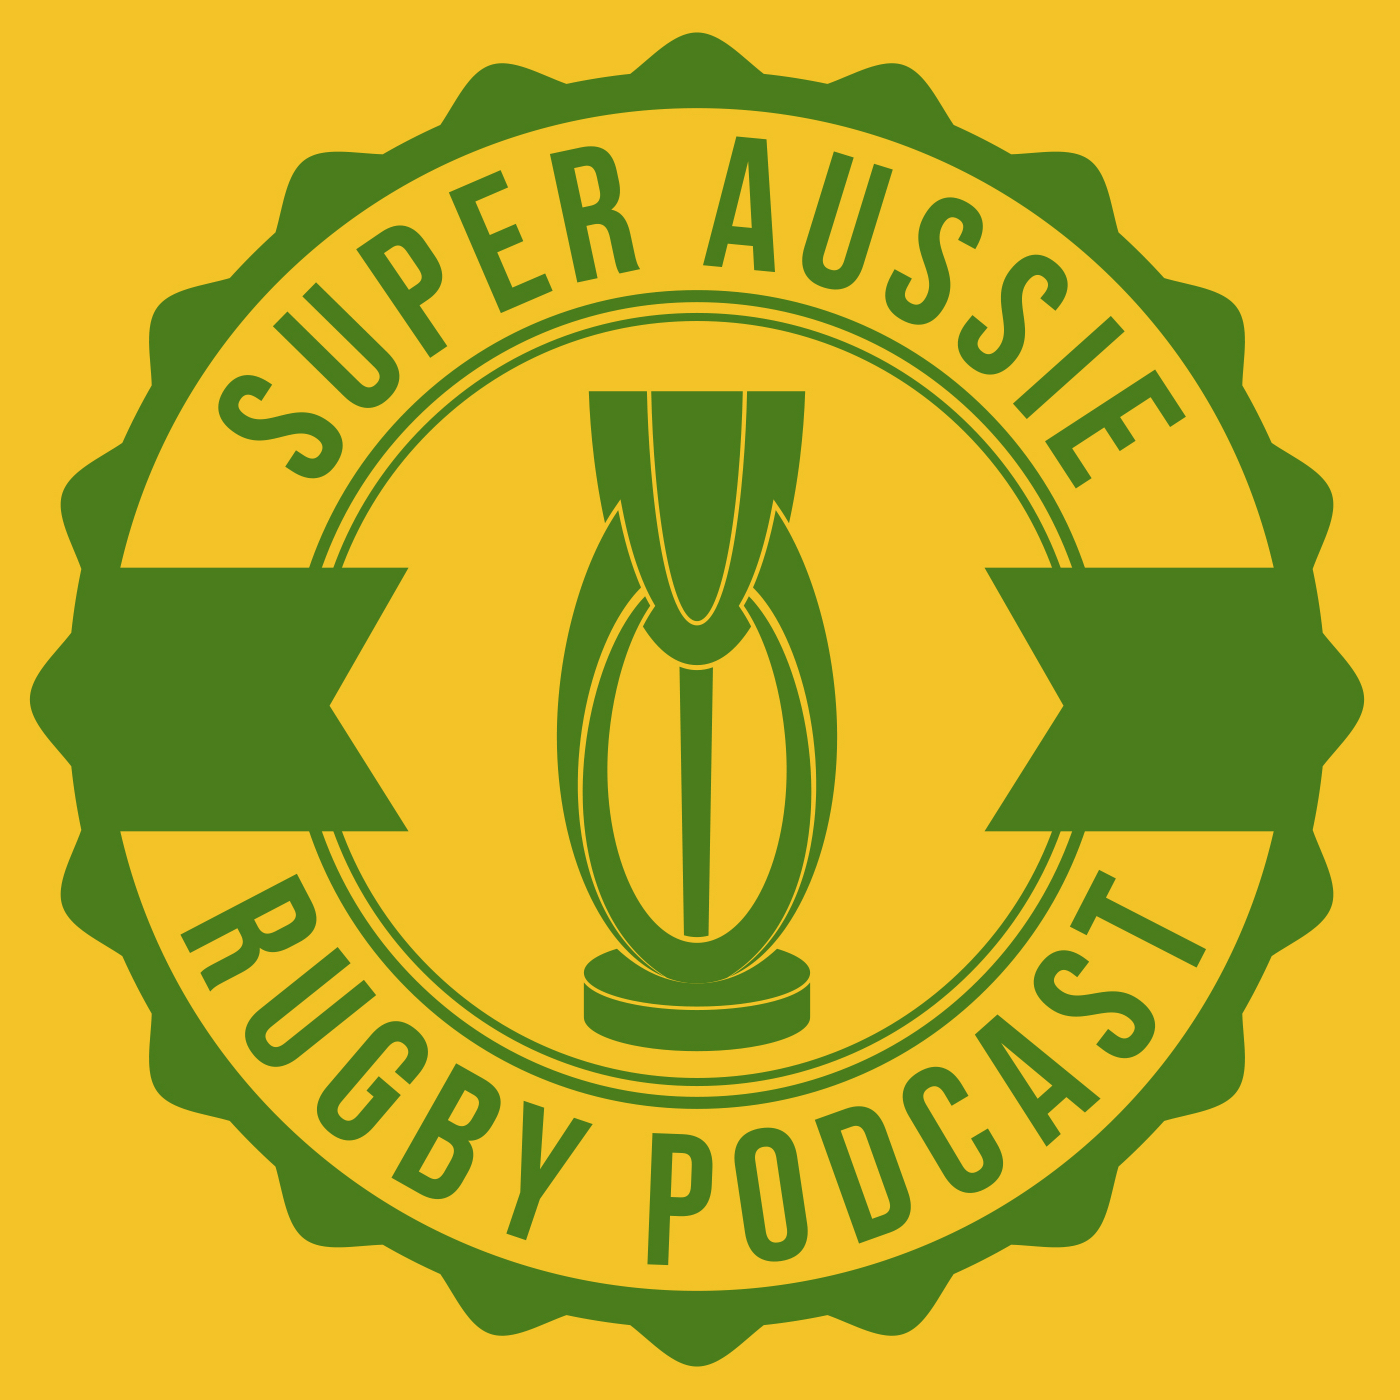 Super Aussie Rugby Podcast